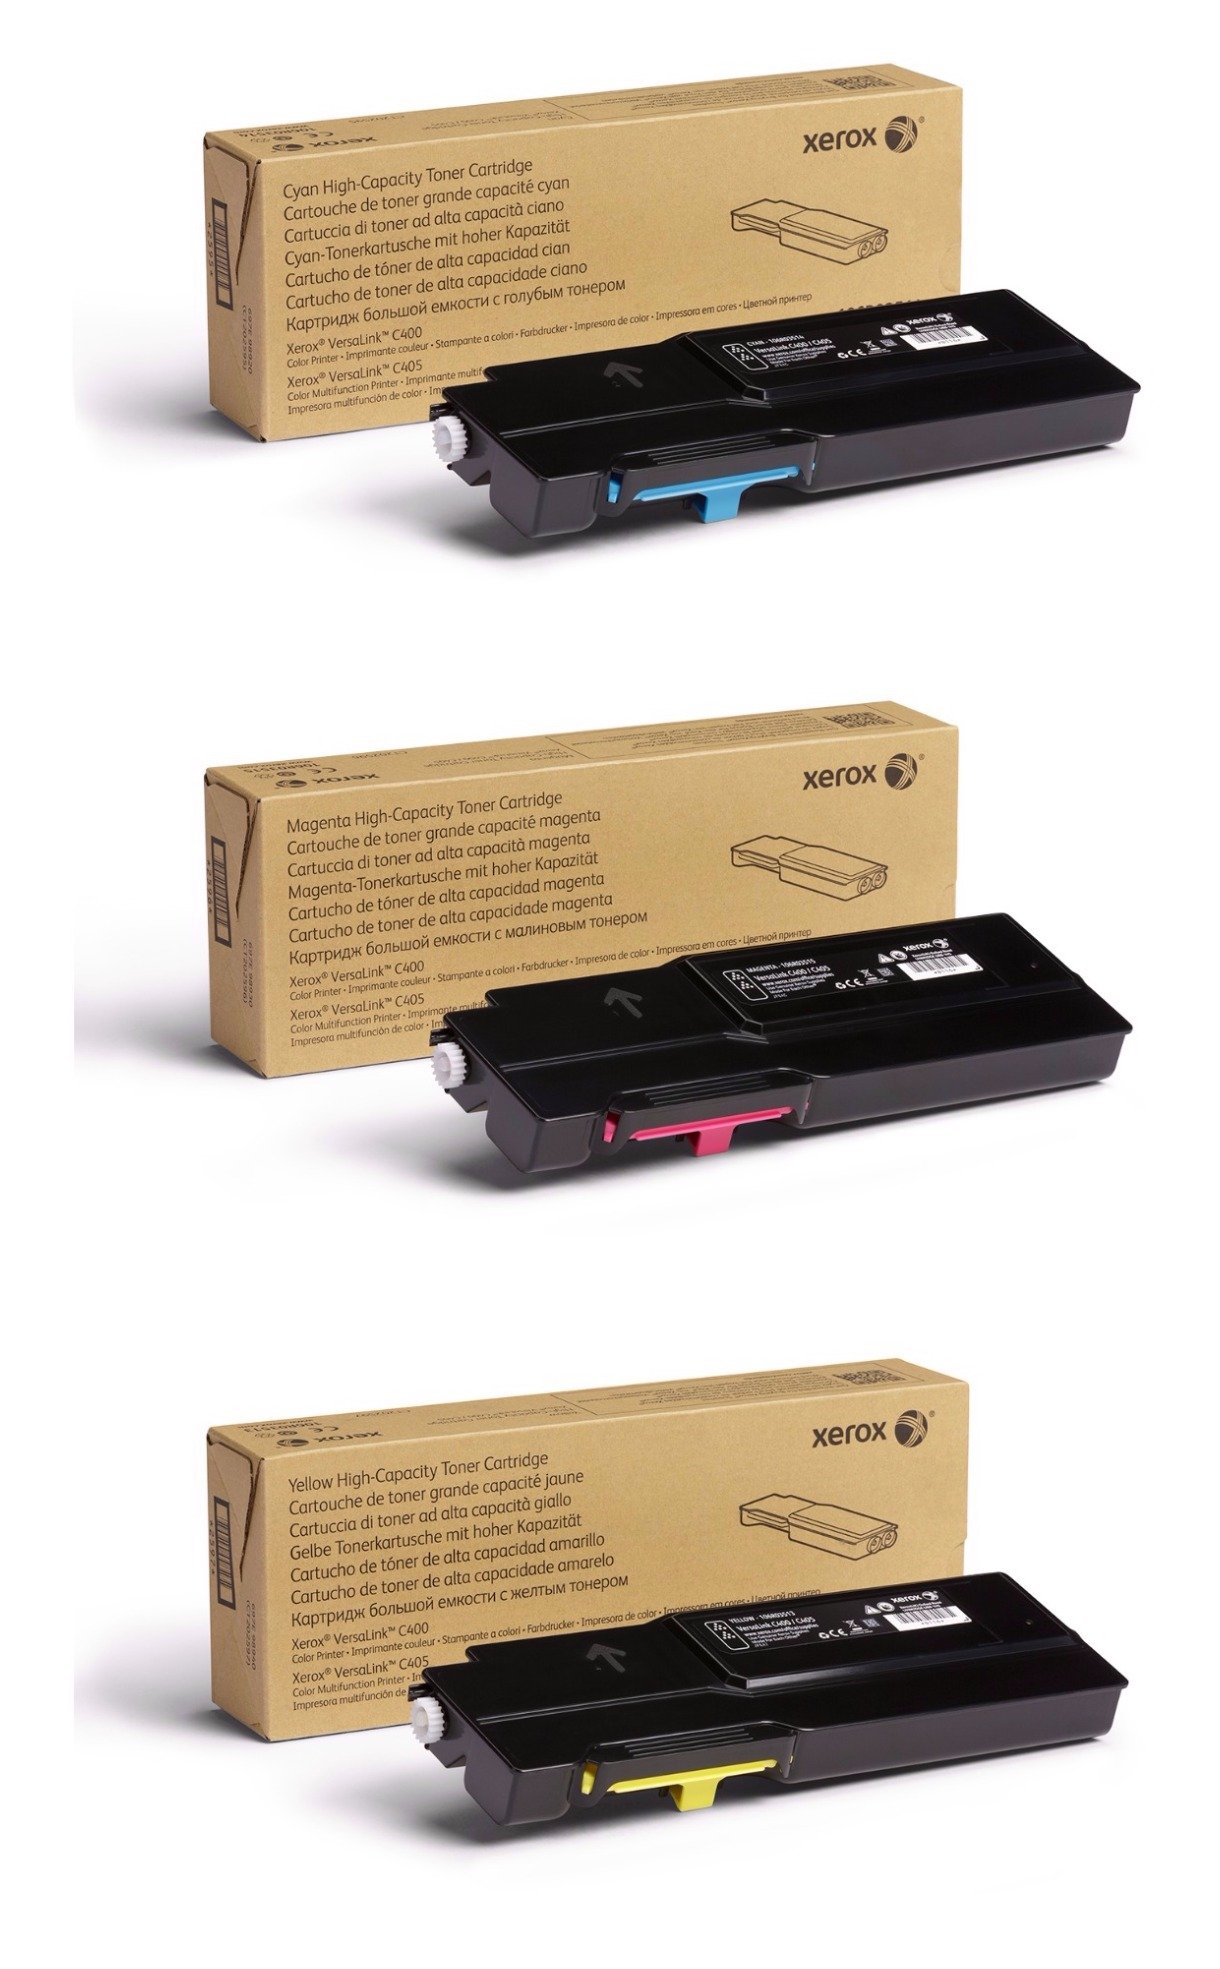 Xerox Cyan/Magenta/Yellow High Capacity Toner Cartridge Set (106R03513, 106R03514, 106R03515) - 4800 Pages - for use in VersaLink C400/C405